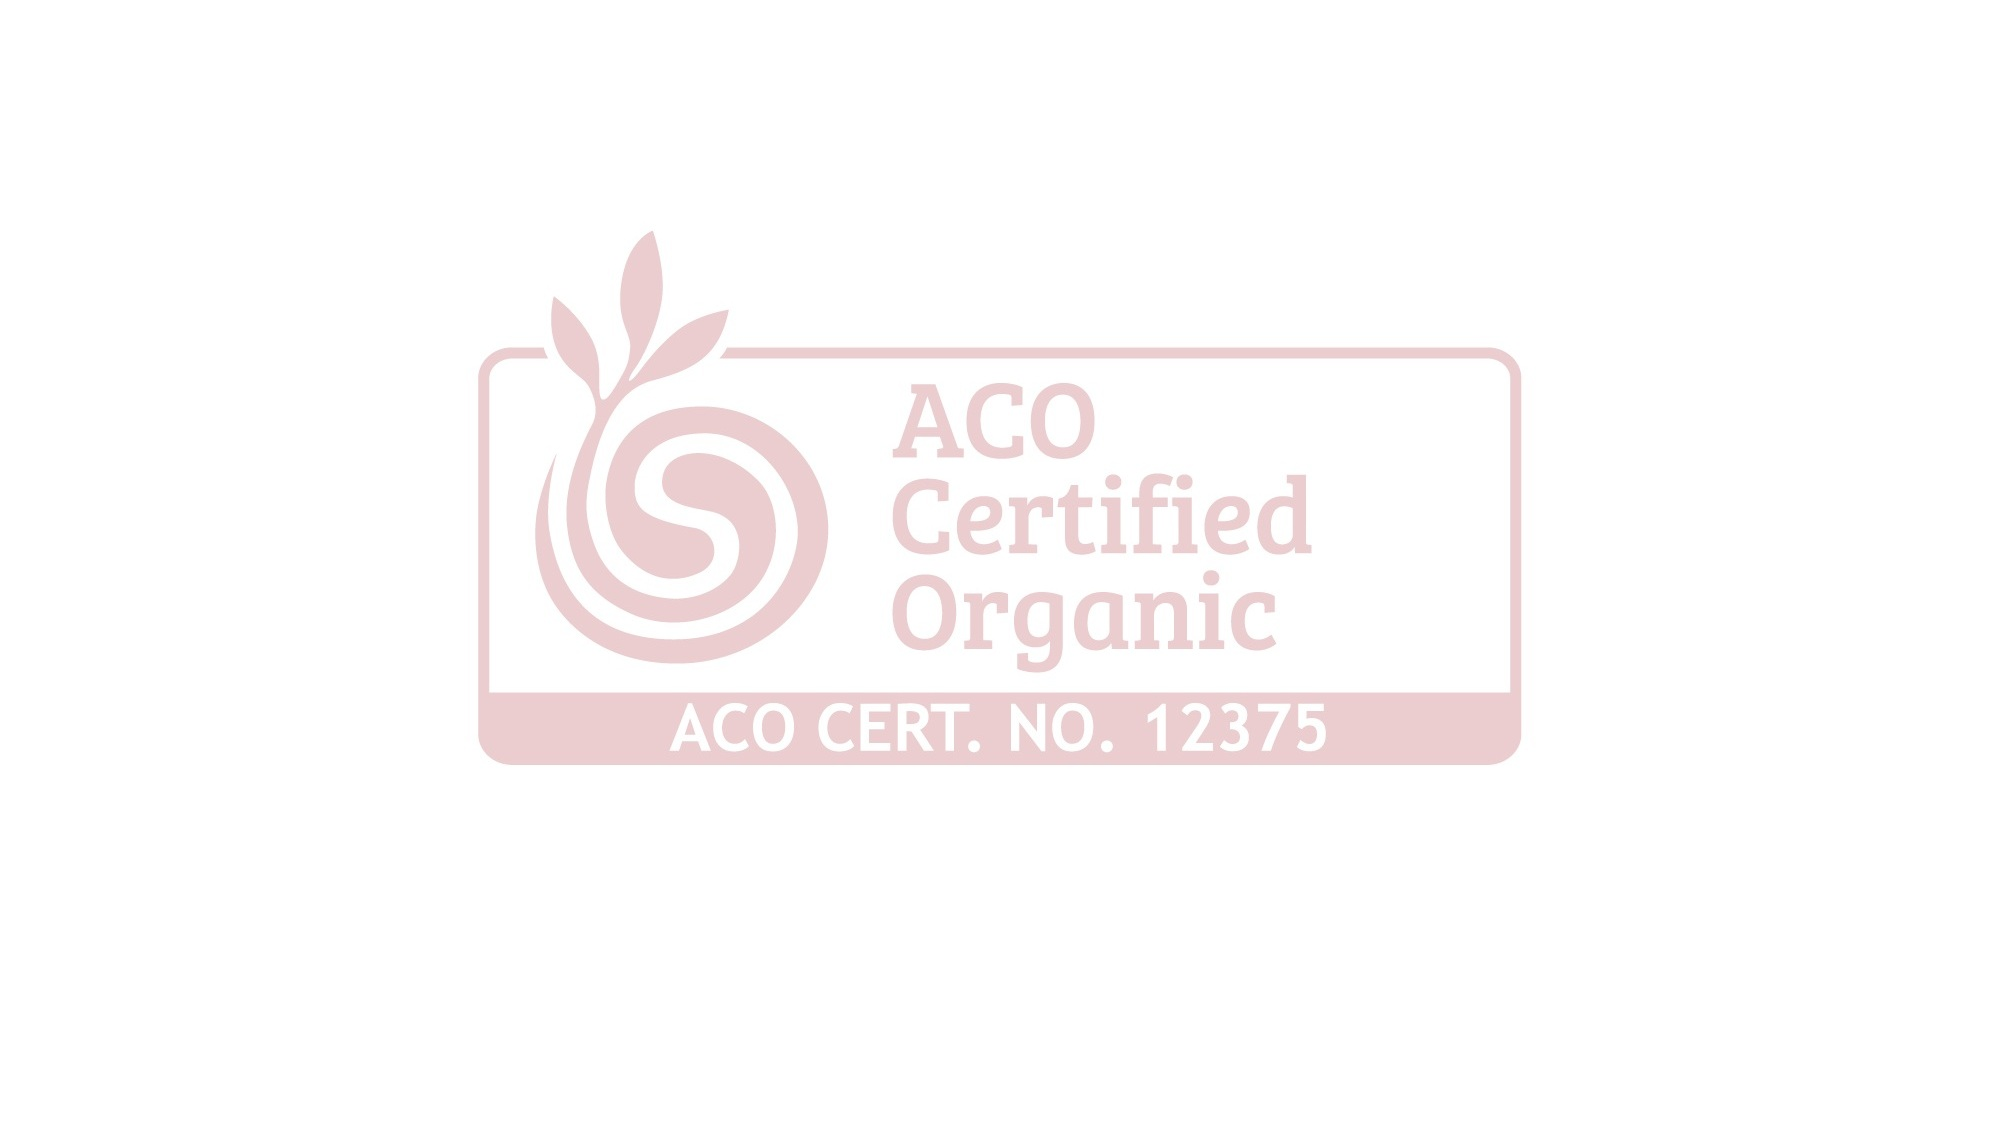 - We have worked hard to make our products Certified Organic against the Australian Certified Organic Standards (ACO) so that you can trust we did our homework and that we have zero harmful chemical additives in any of our products. AHRIA Organics was created with science for the love of our family and yours.ACO CERTIFICATE: 12375